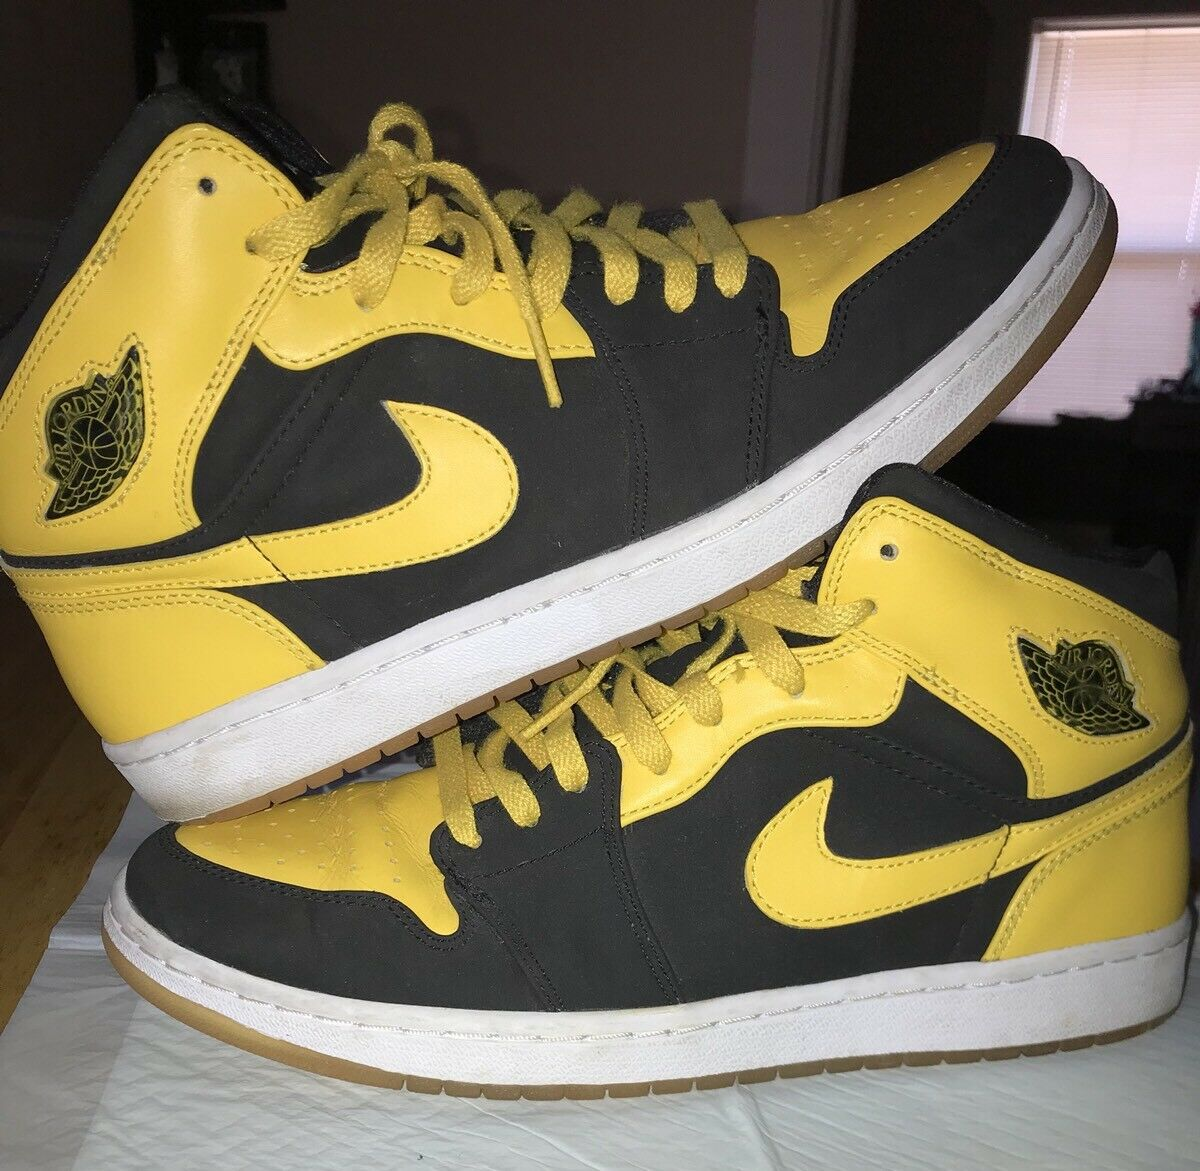 Nike Air Jordan Retro 1 OG Mid New Love Black Yellow Size 10.5